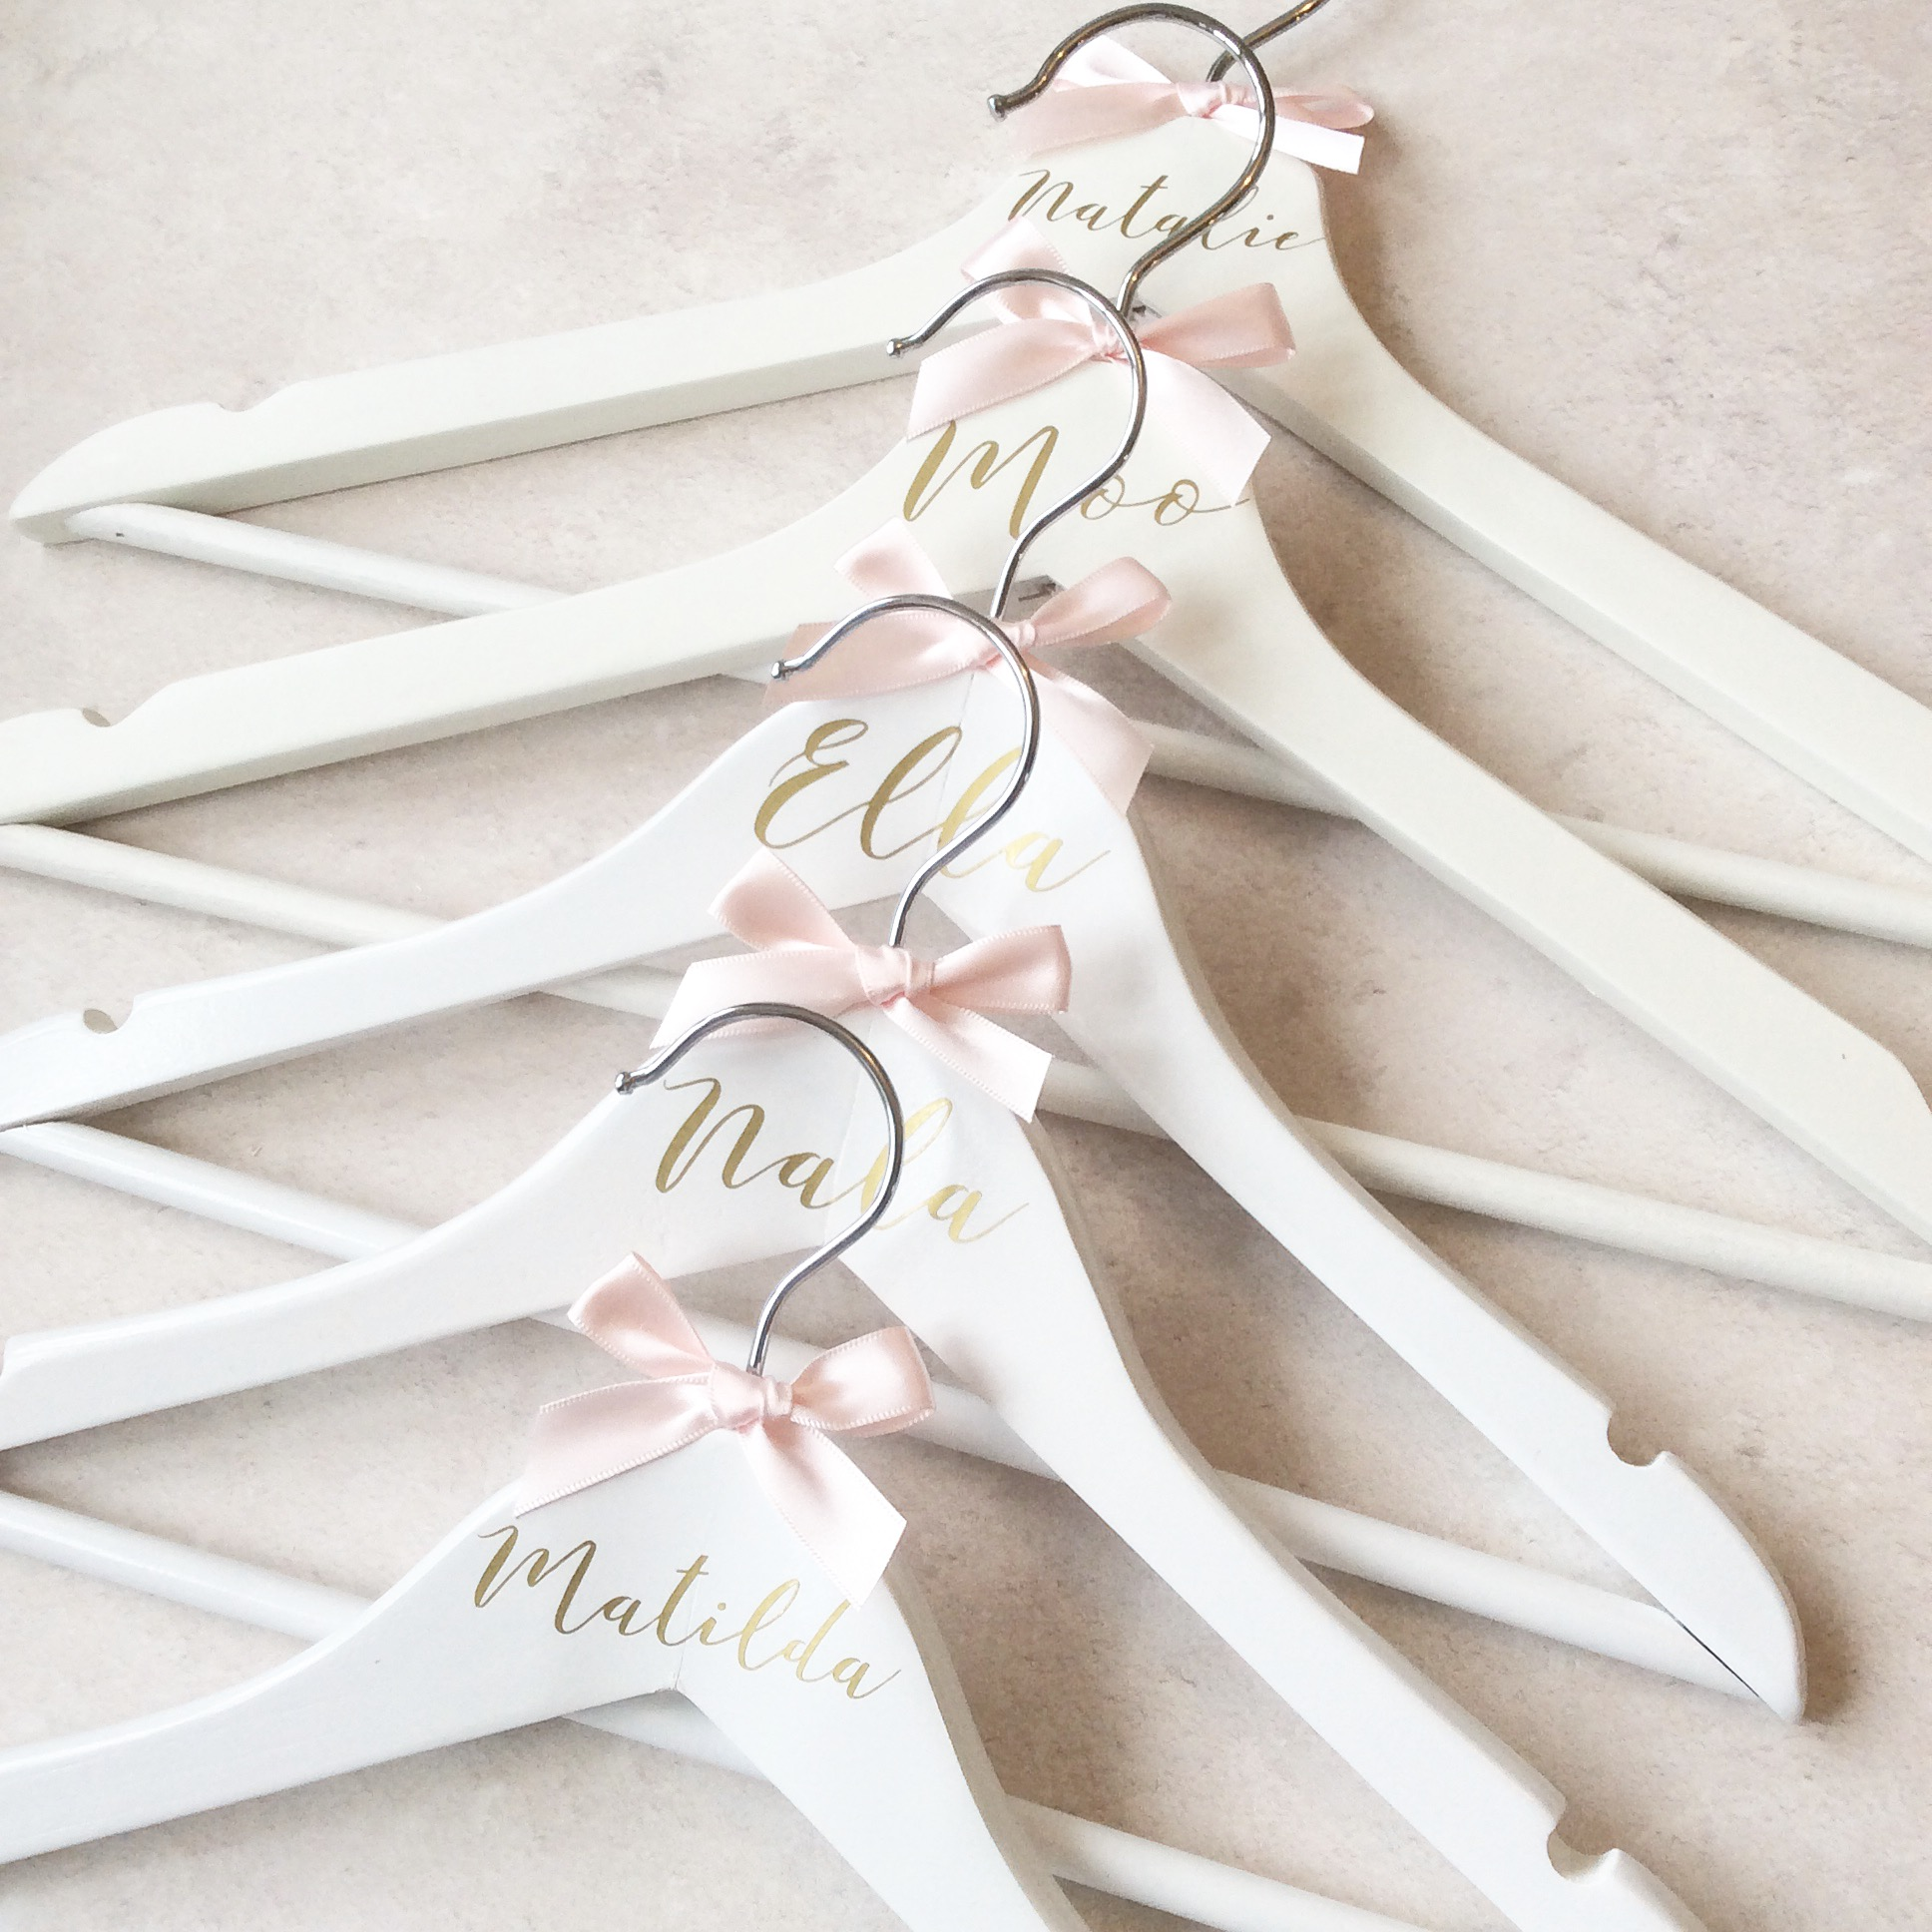 Personalised White Wooden Hanger - Childs size